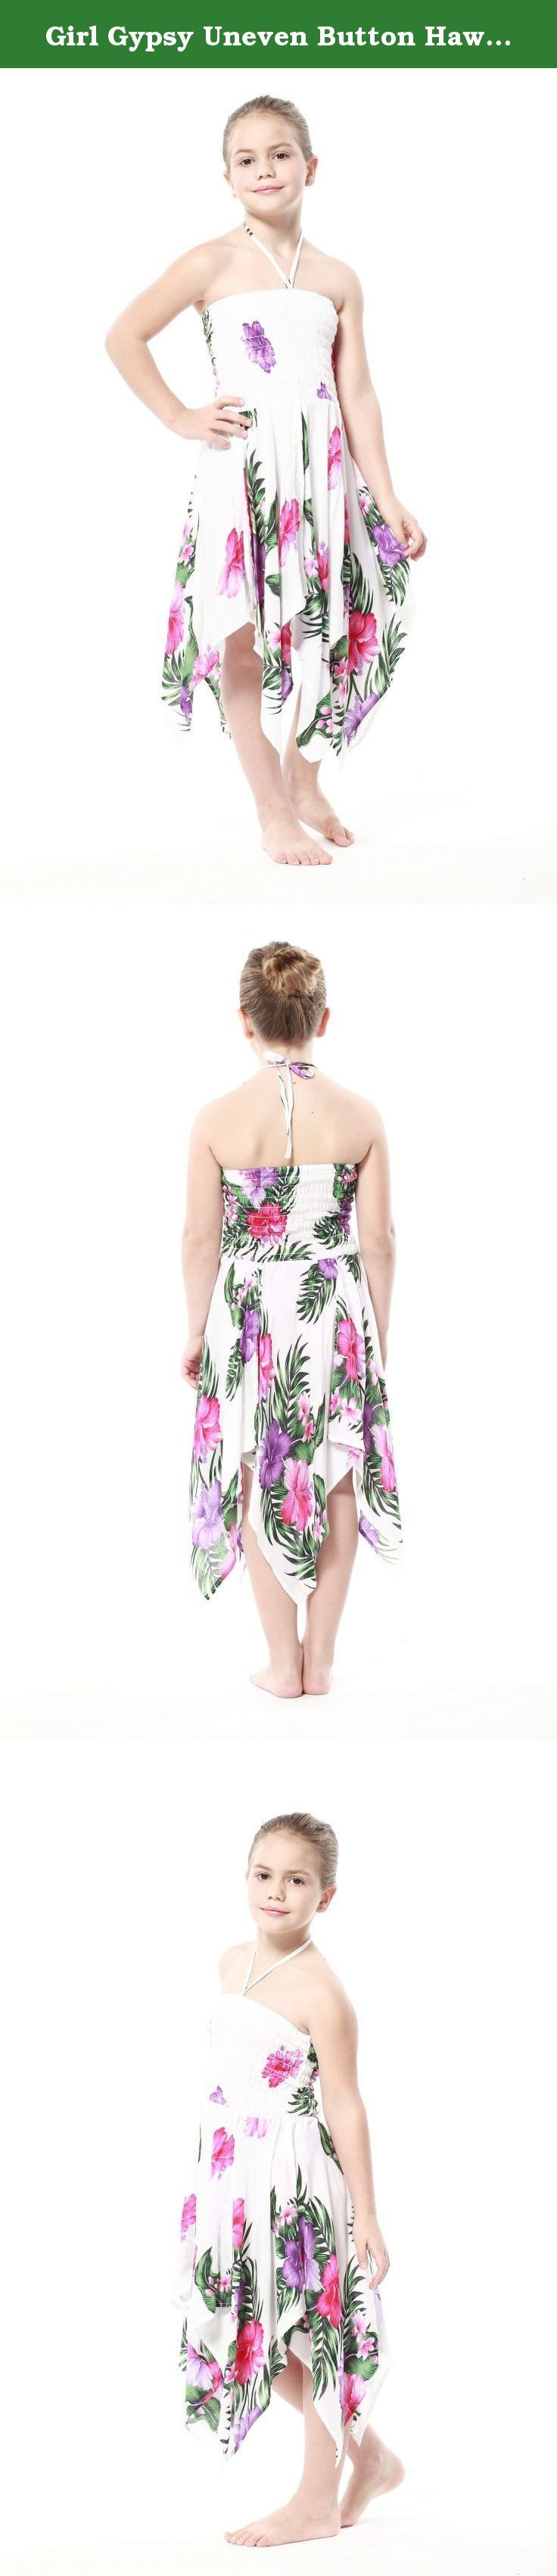 Girl Gypsy Uneven Button Hawaiian Luau Dress in White with Pink and Purple Floral 4. A beautiful Hawaiian print that is perfect for vacation, cruise, luau or Hawaiian themed party or wedding celebration.